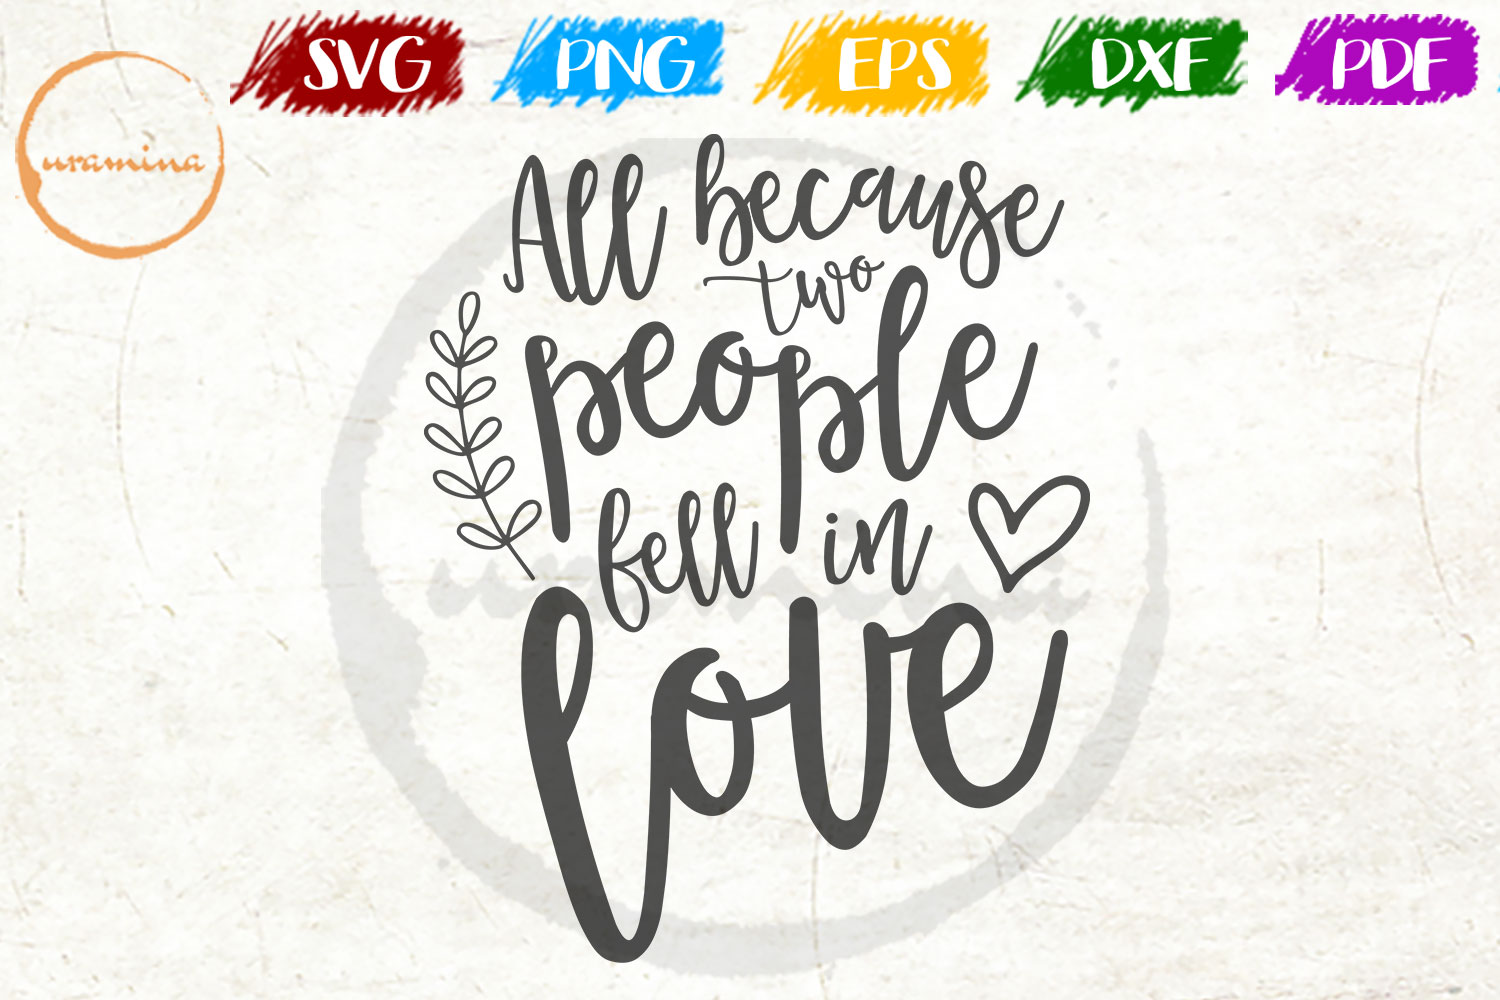 Download Free All Because Two People Fell In Love Graphic By Uramina Creative Fabrica for Cricut Explore, Silhouette and other cutting machines.